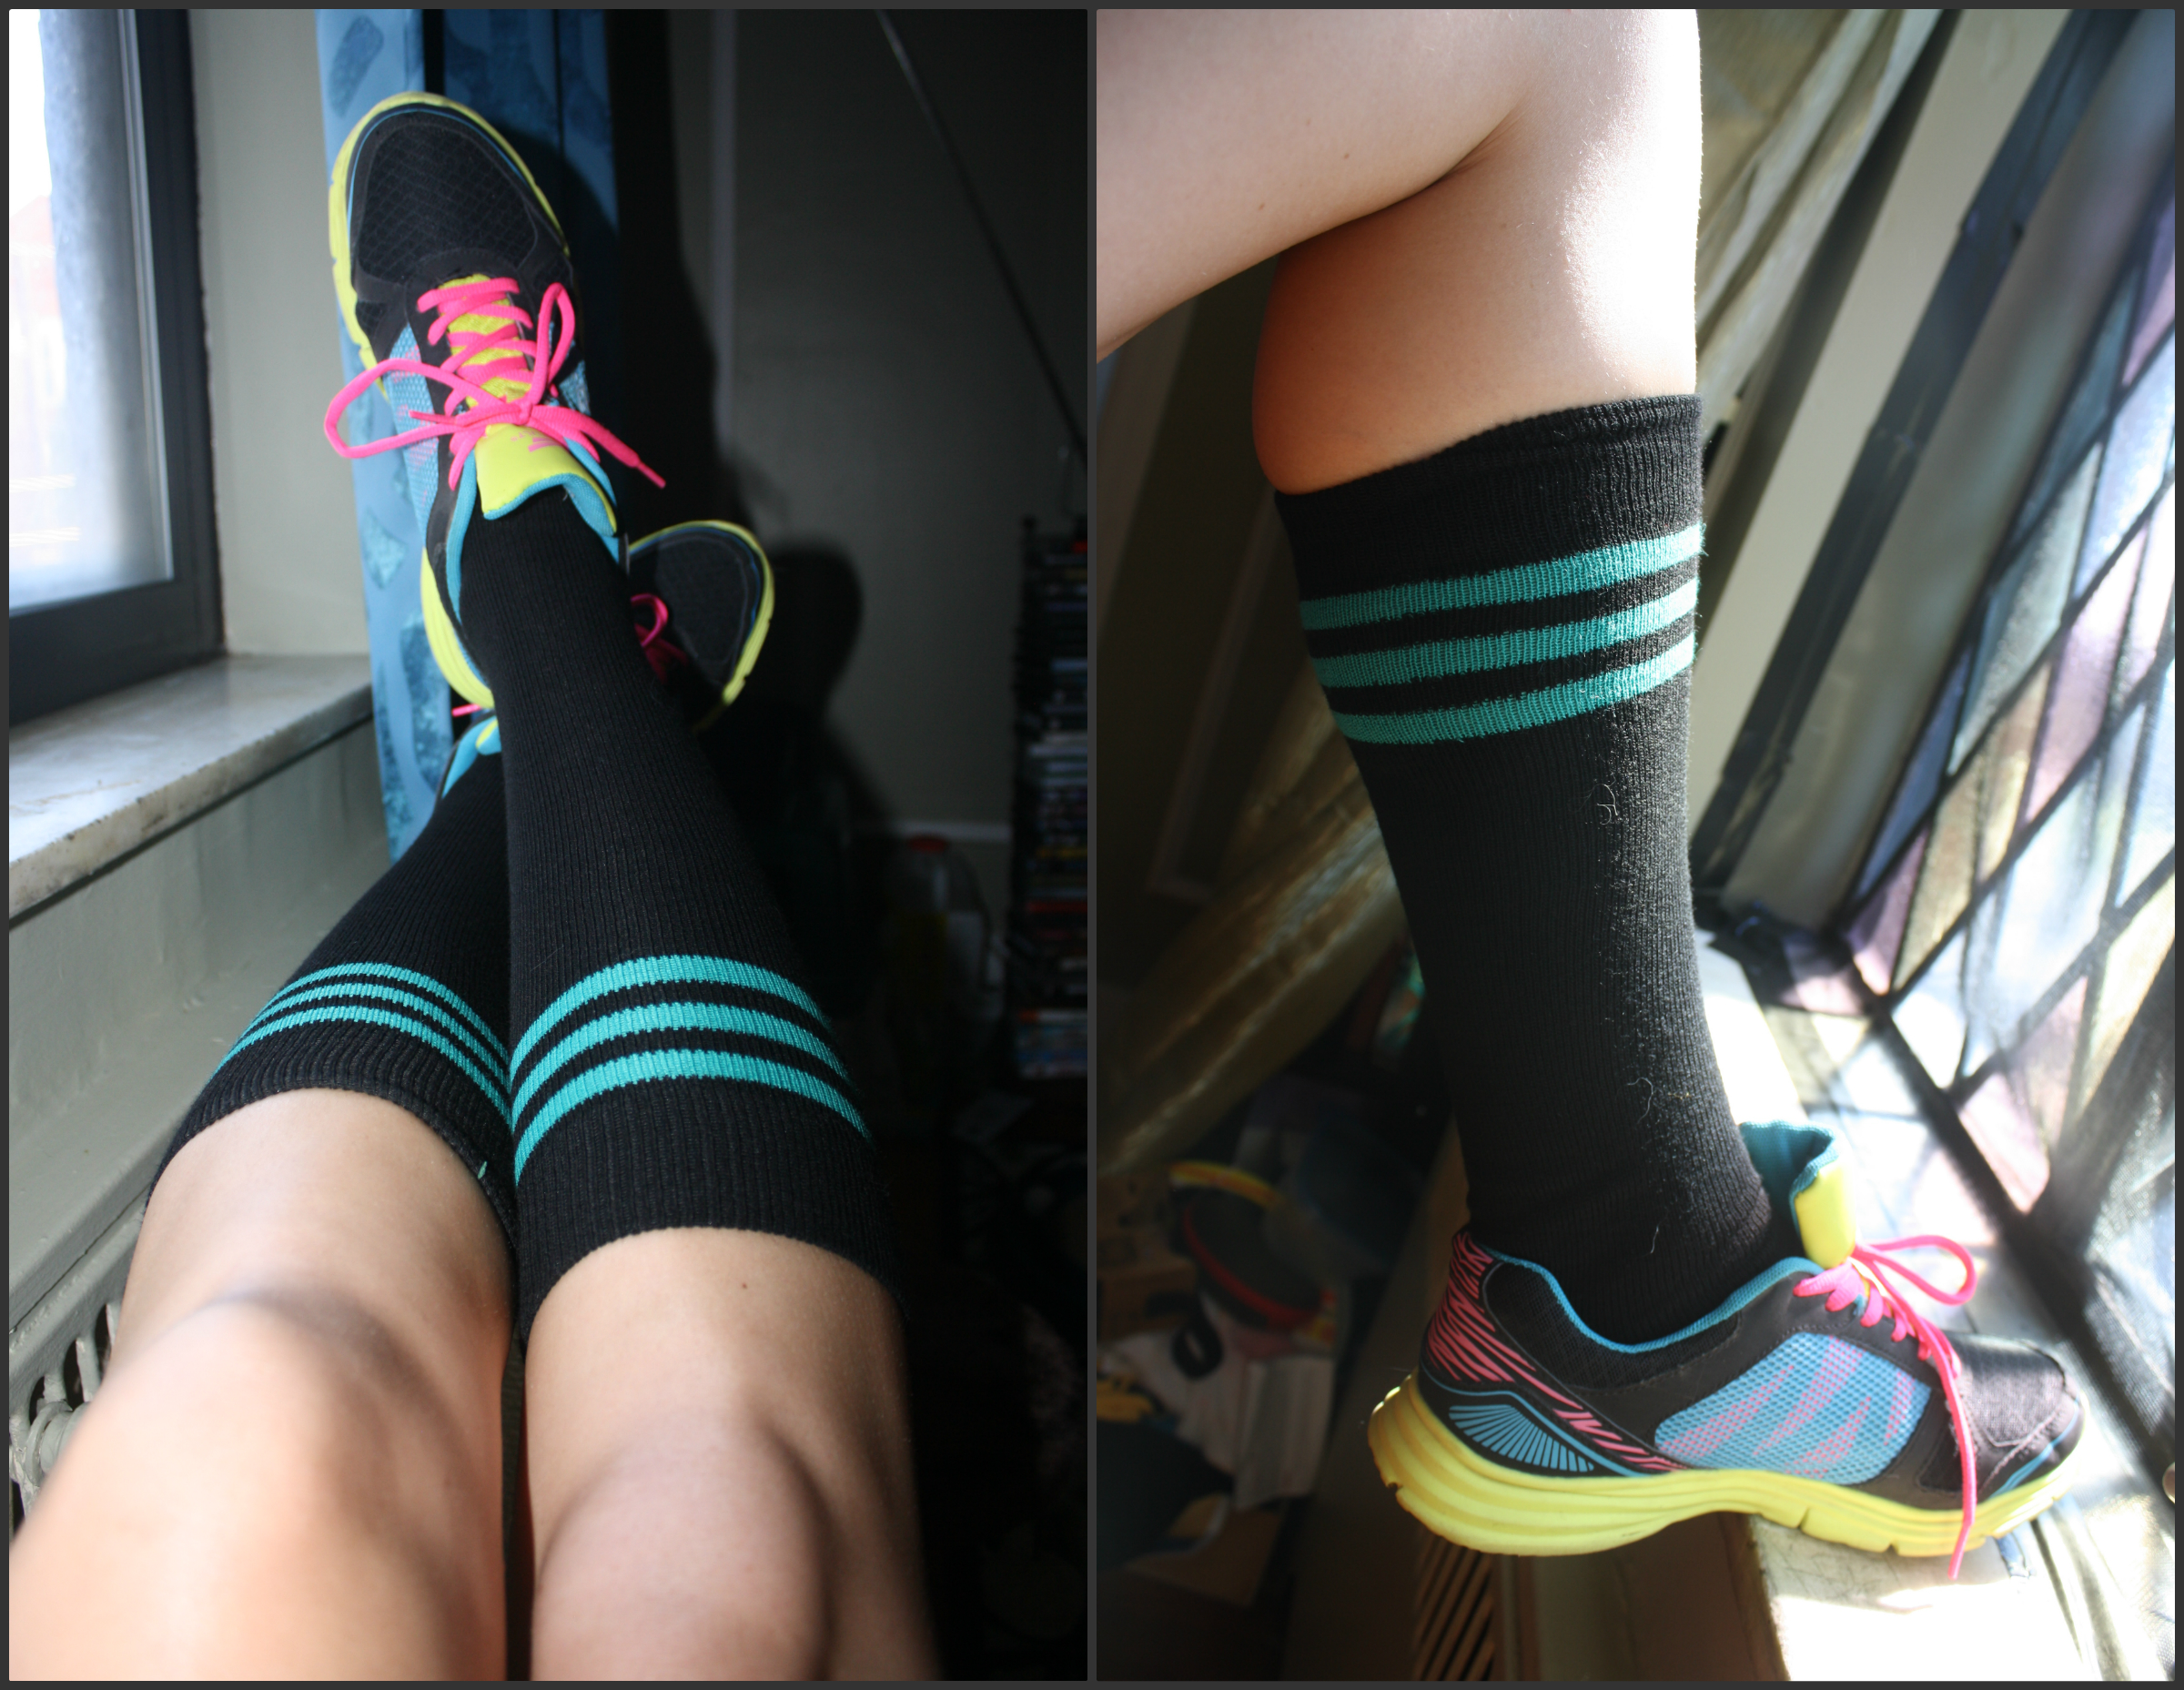 f8054896d Some Fashion Fun With Chrissy s Knee High Socks  A Review - Deluded ...